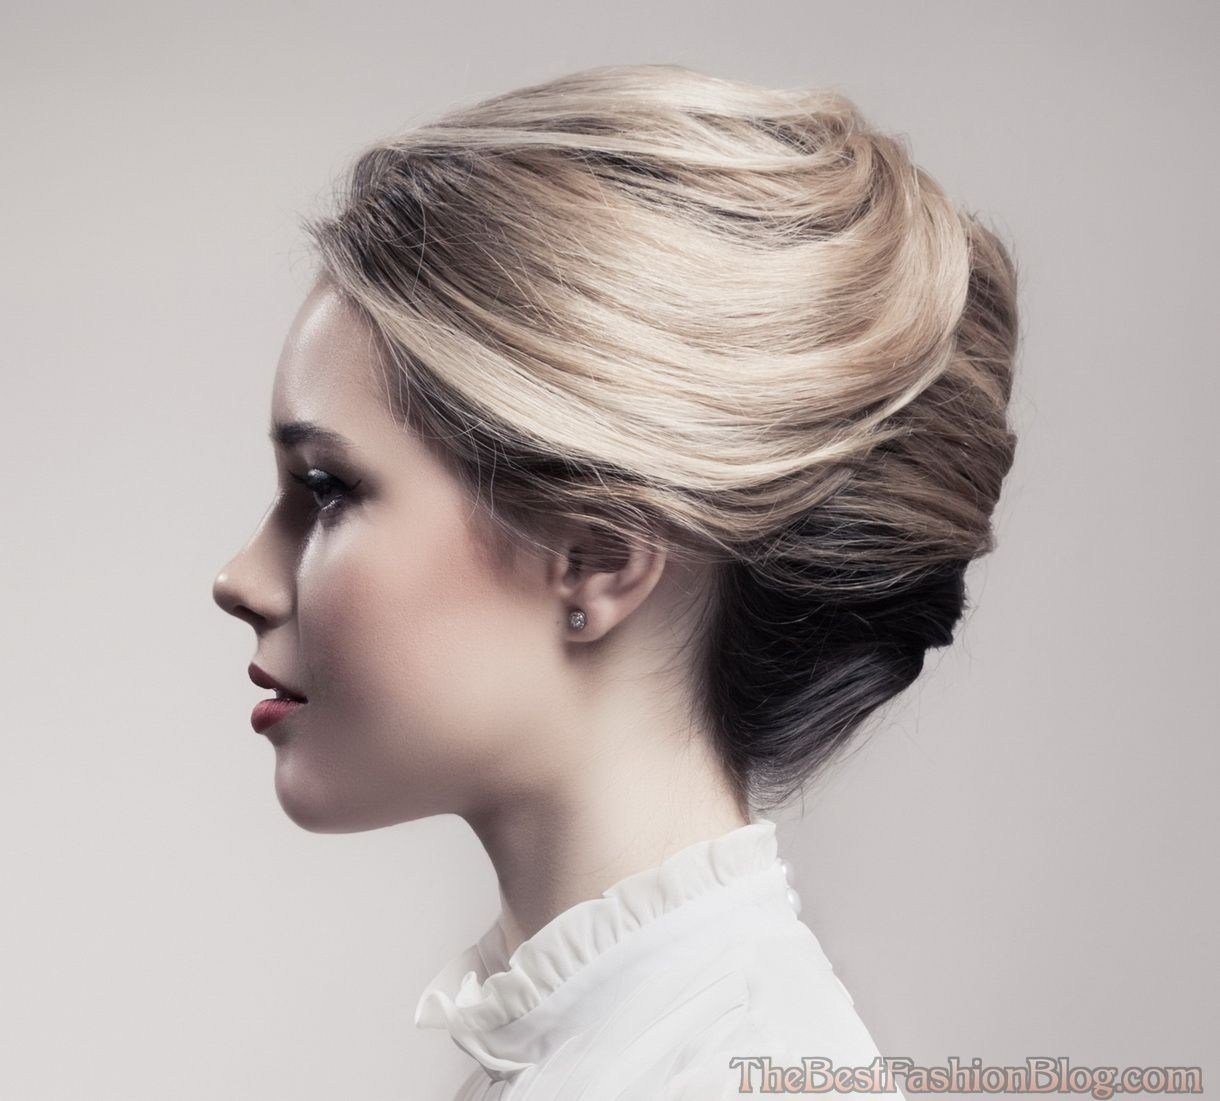 New Business Hairstyles Long Hair Fade Haircut Ideas With Pictures